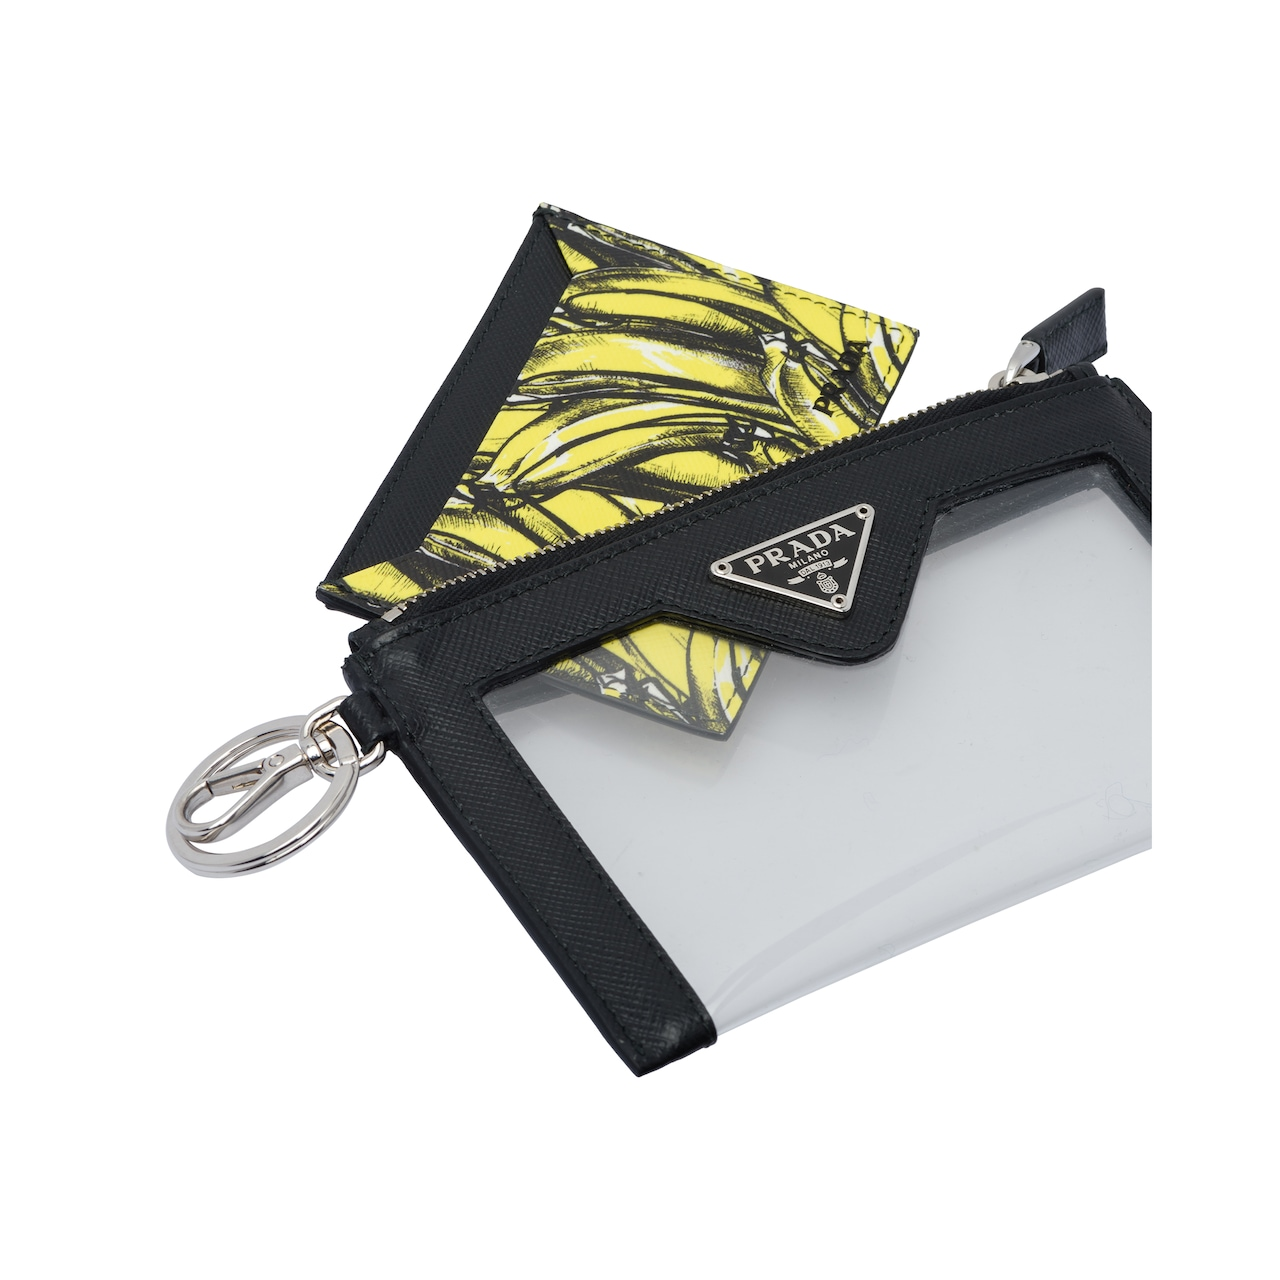 Prada Saffiano Leather Multi-functional Pouch With Strap 2